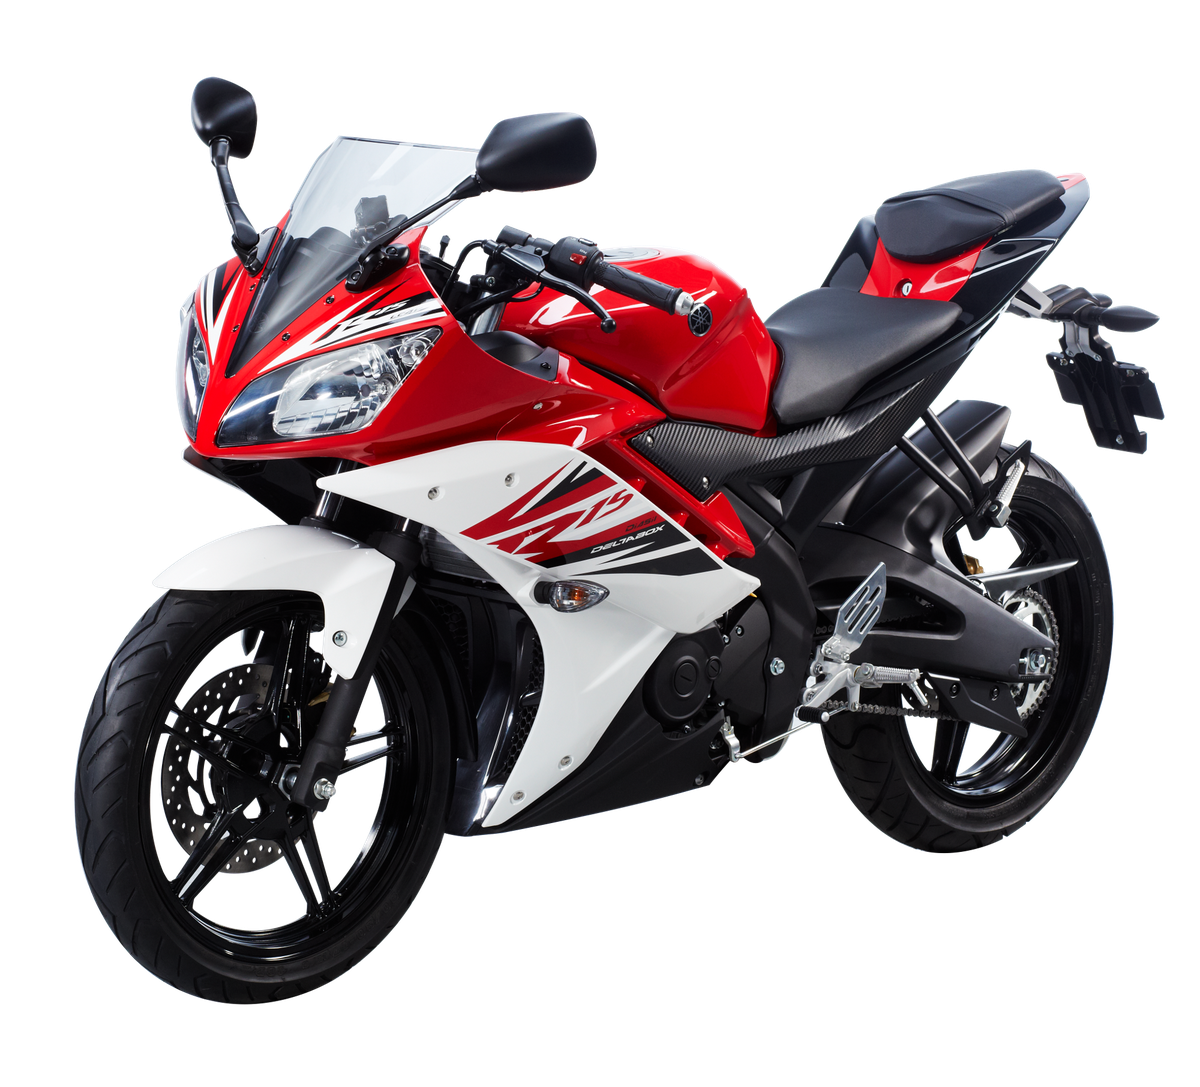 Yamaha R15 V3 Price Philippines Of Yamaha R15 Racing Red The Image Kid Has It